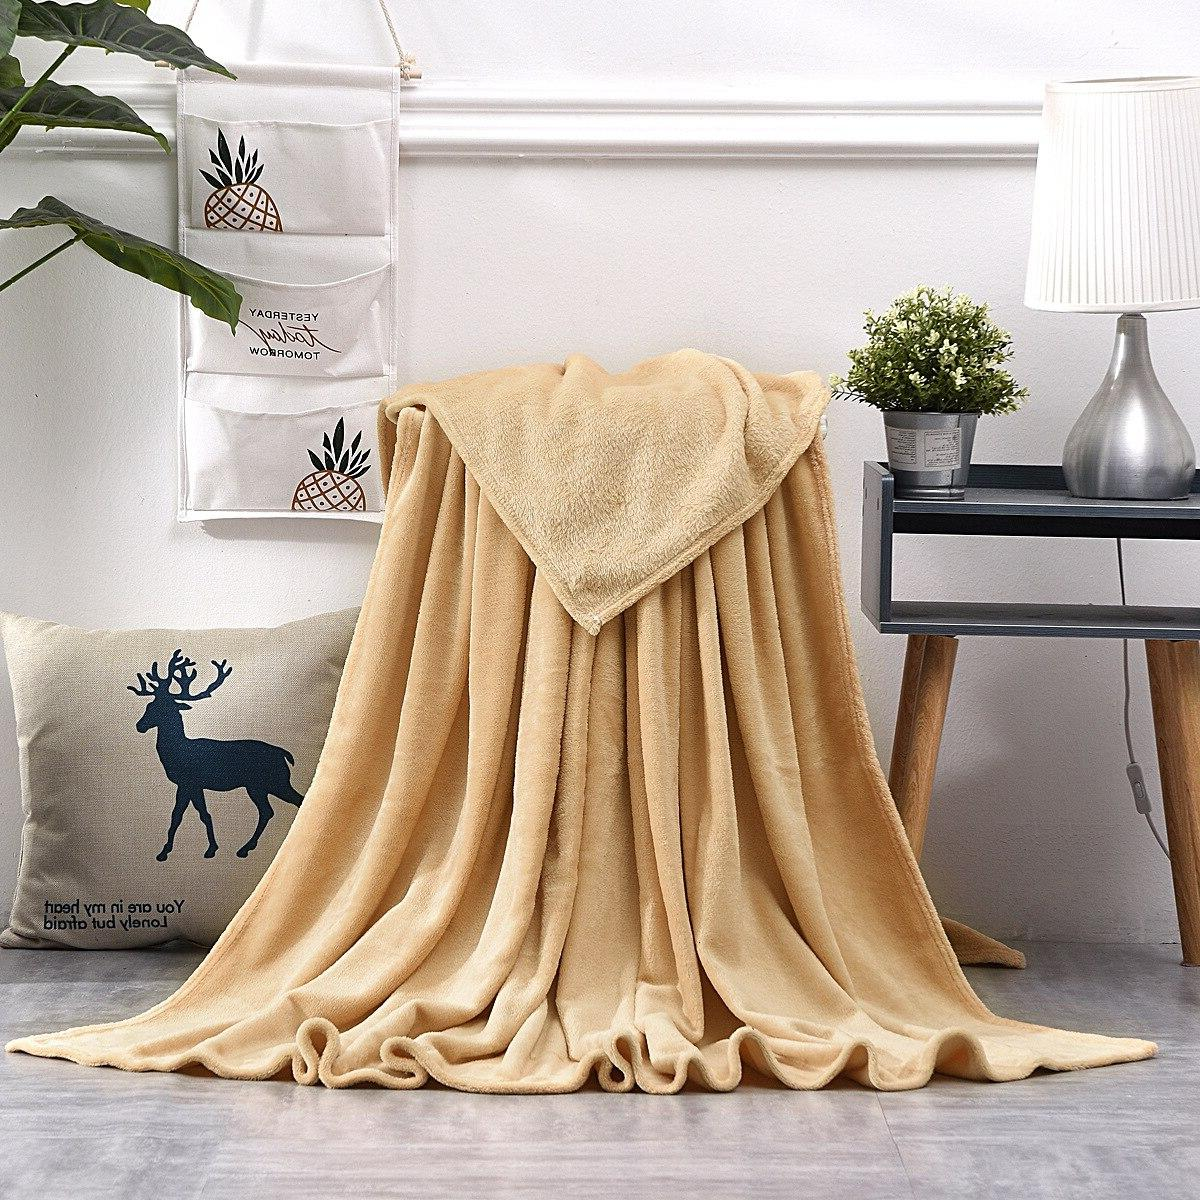 Bedspread Bedding Blanket <font><b>Soft</b></font> Comfortable Home Sofa <font><b>Bed</b></font> Throw Season Universal Blanket